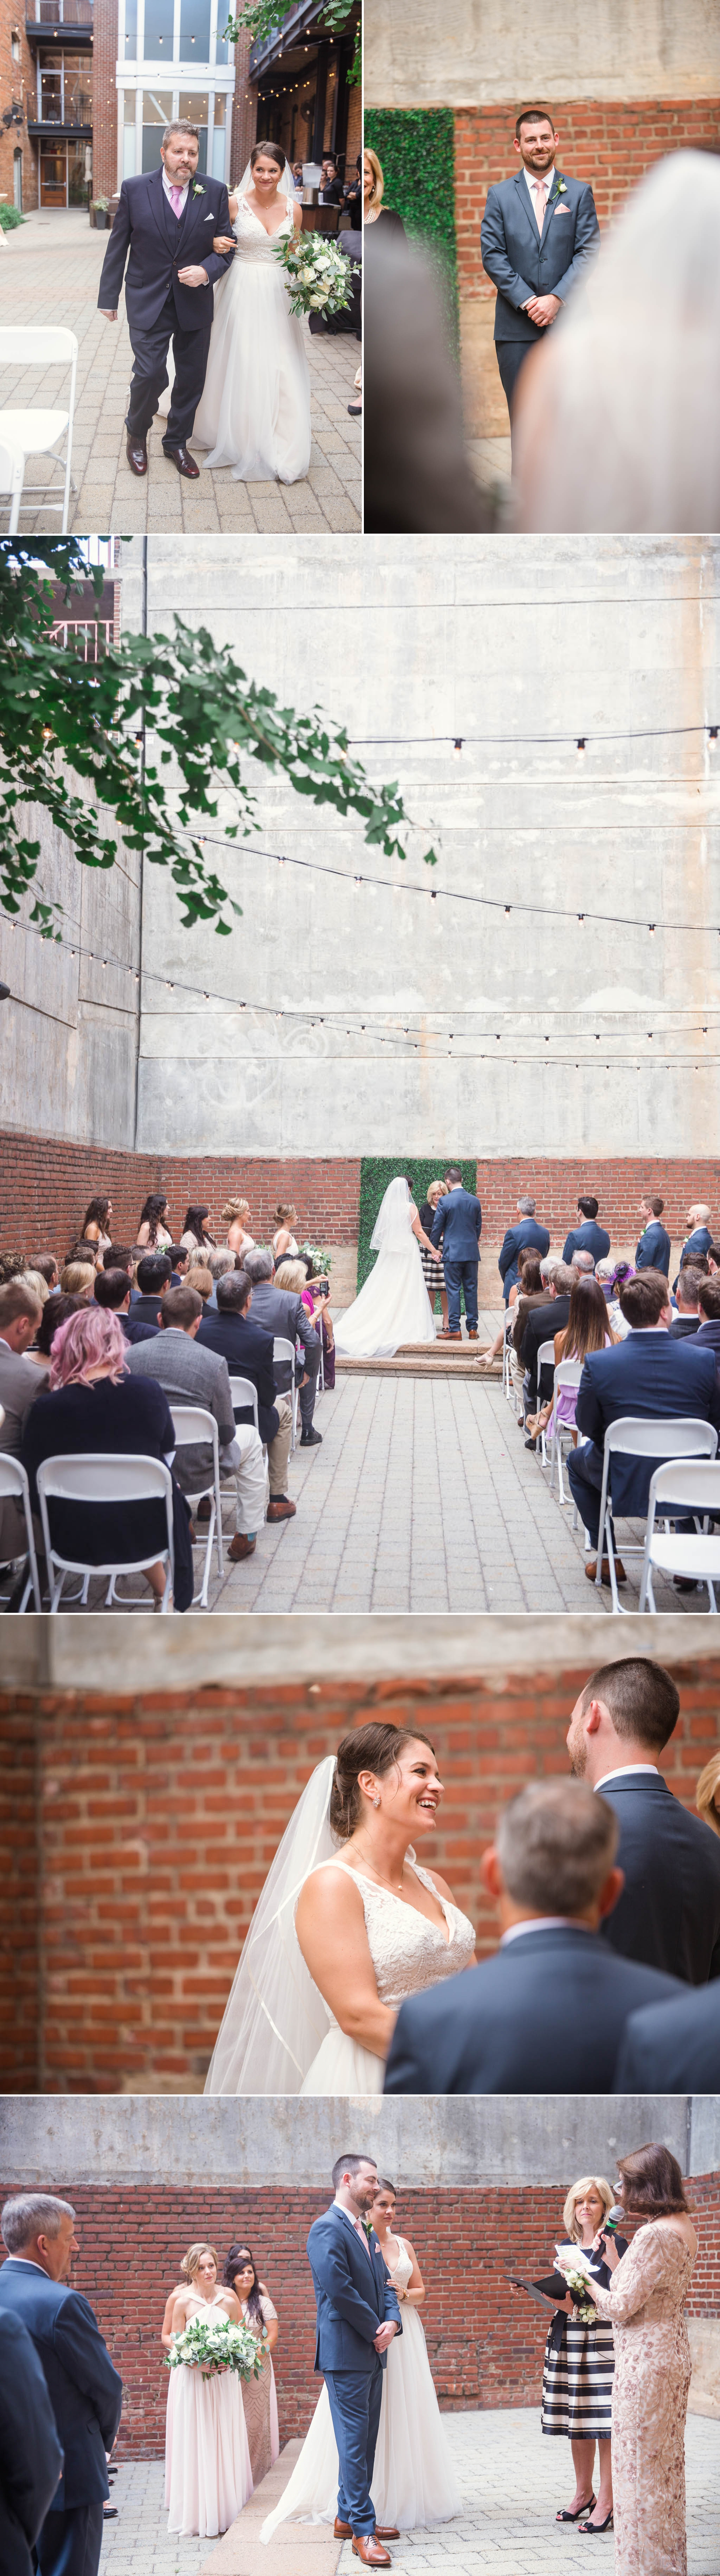 Downtown Industrial Wedding Ceremony at Clare + Wallace - The Jiddy Space - Raleigh North Carolina Wedding Photographer